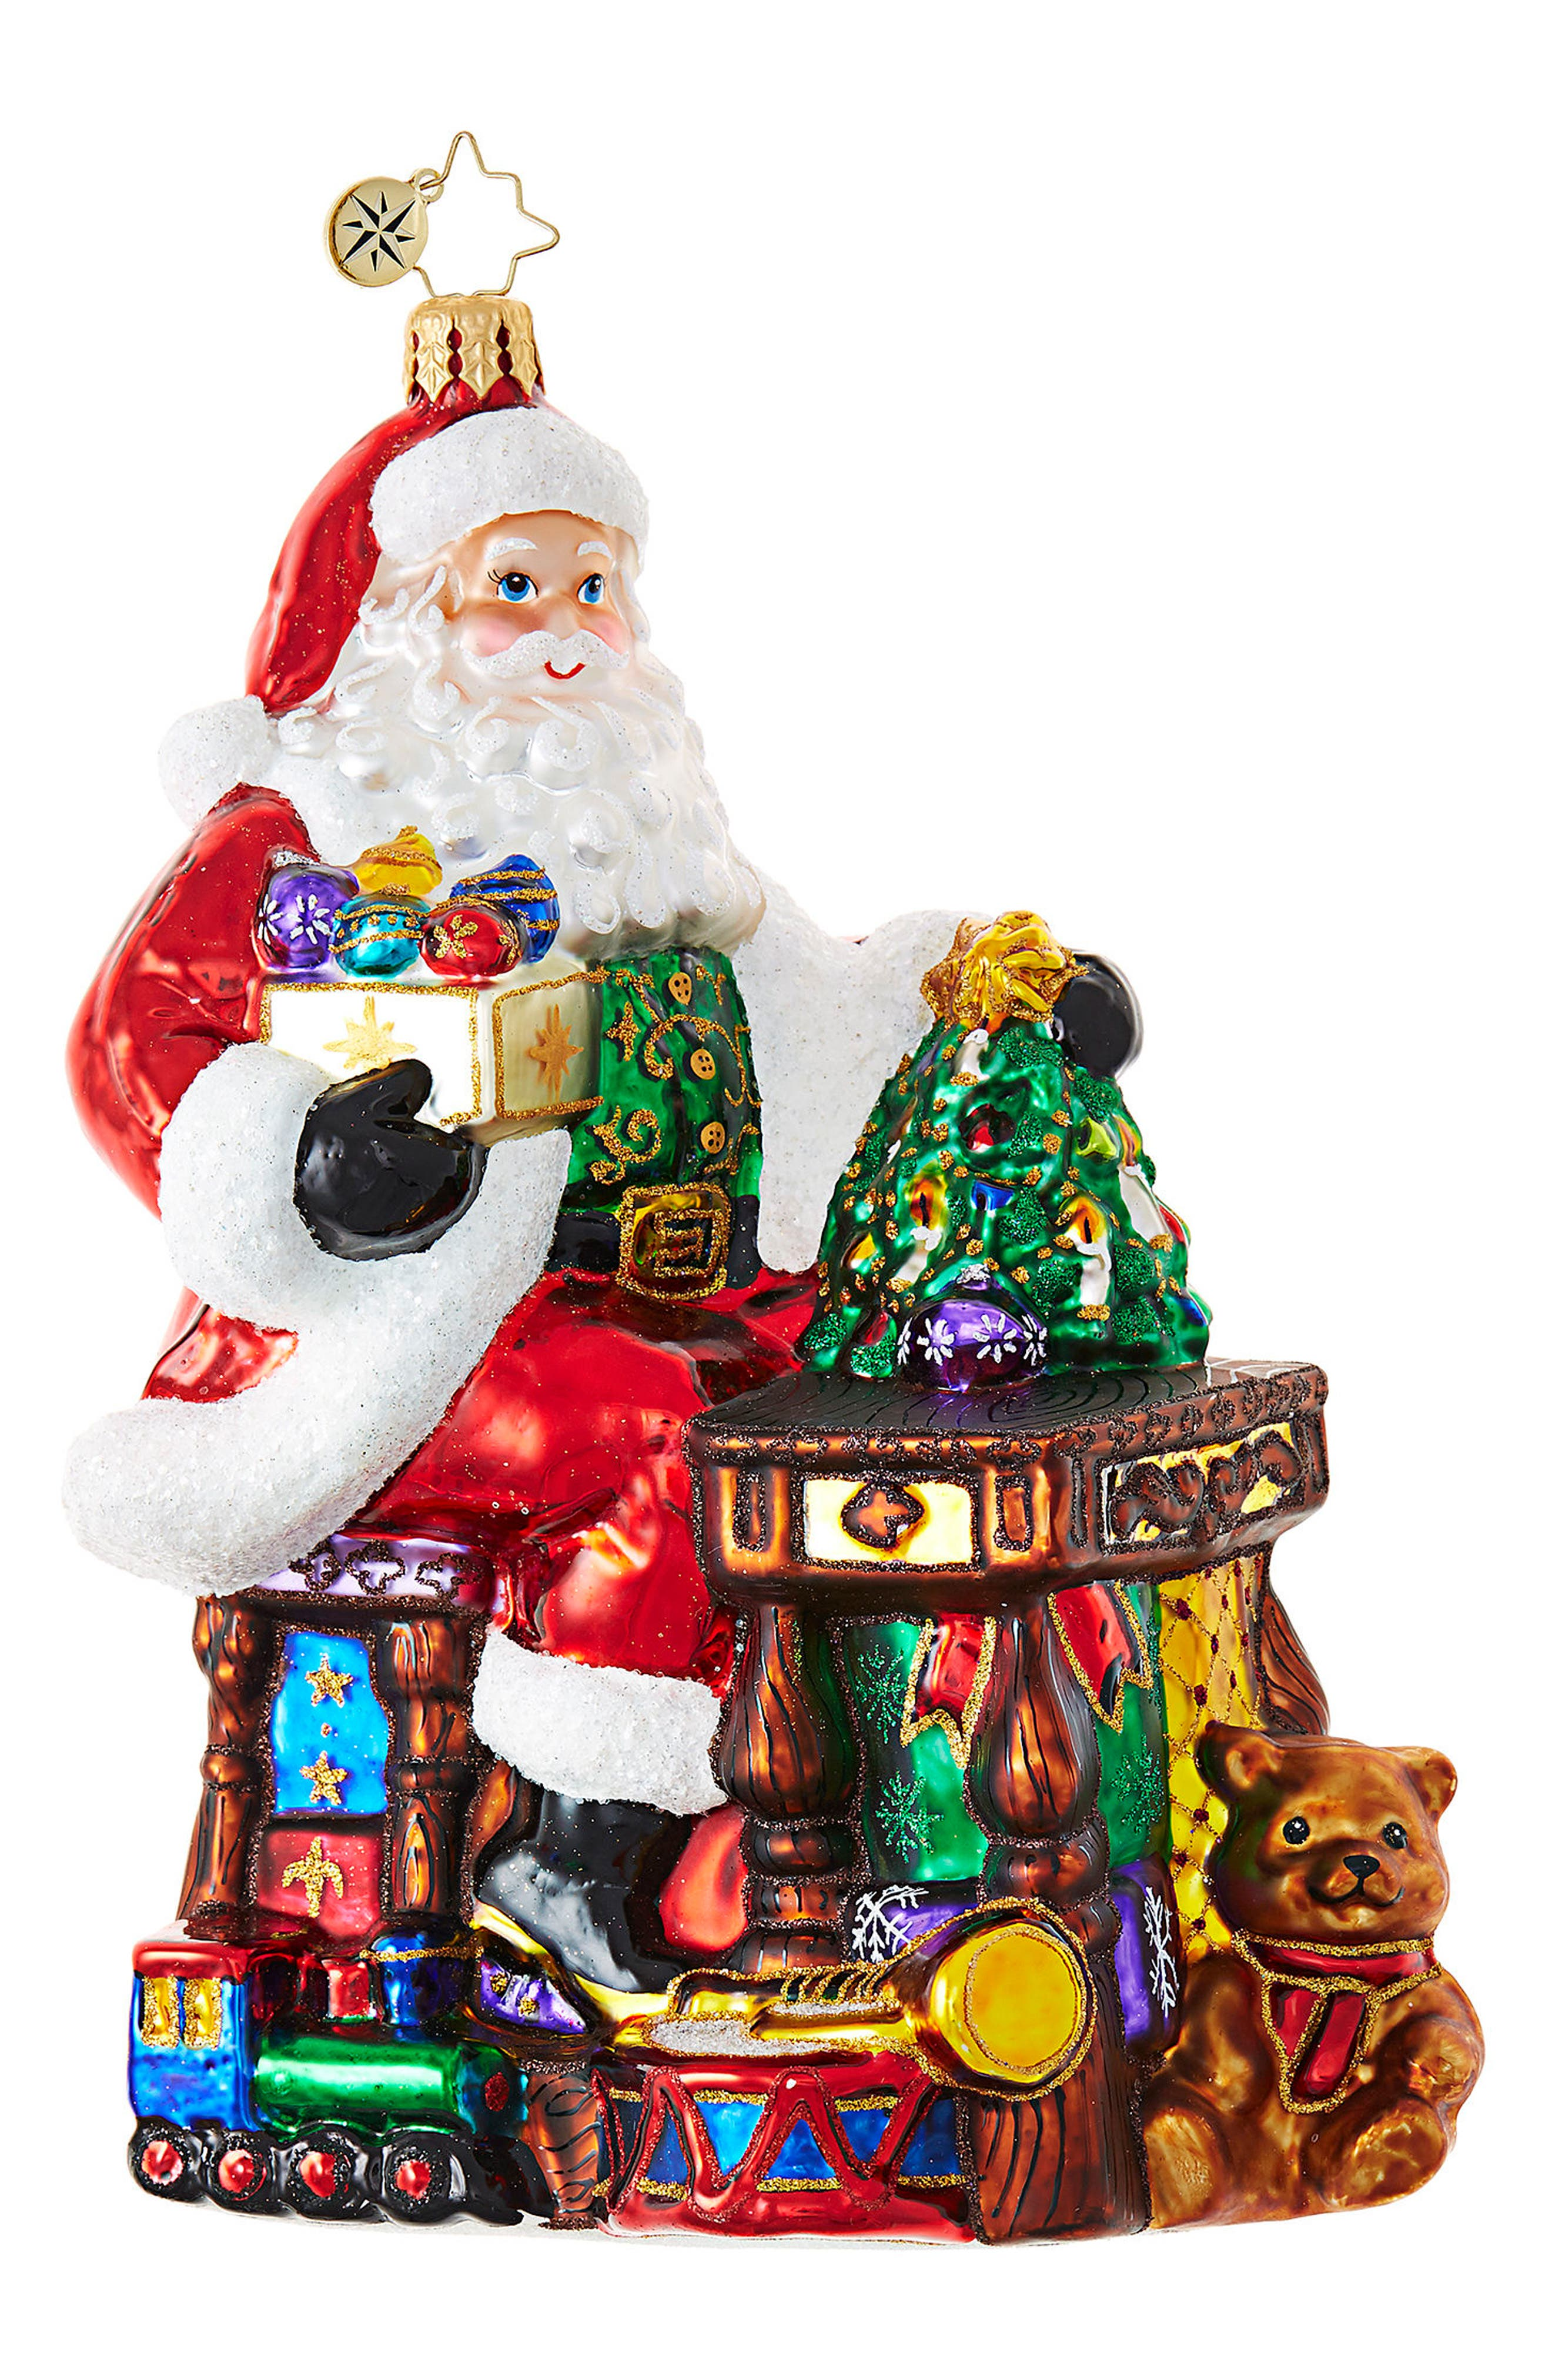 Alternate Image 1 Selected - Christopher Radko Santa's Toy Shop Ornament